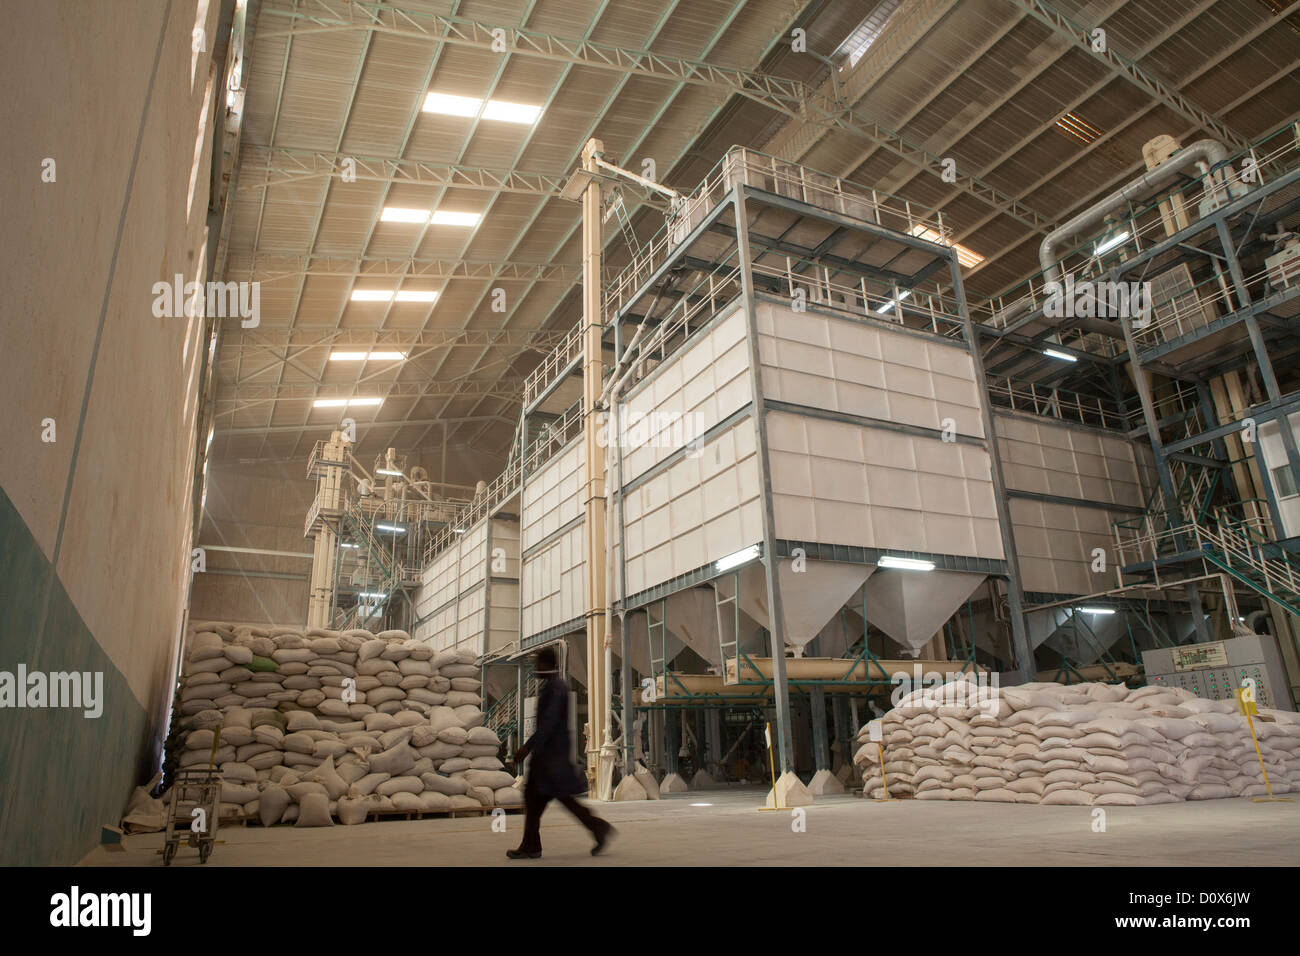 Machinery at a commodities warehouse in Dodoma, Tanzania, East Africa. - Stock Image